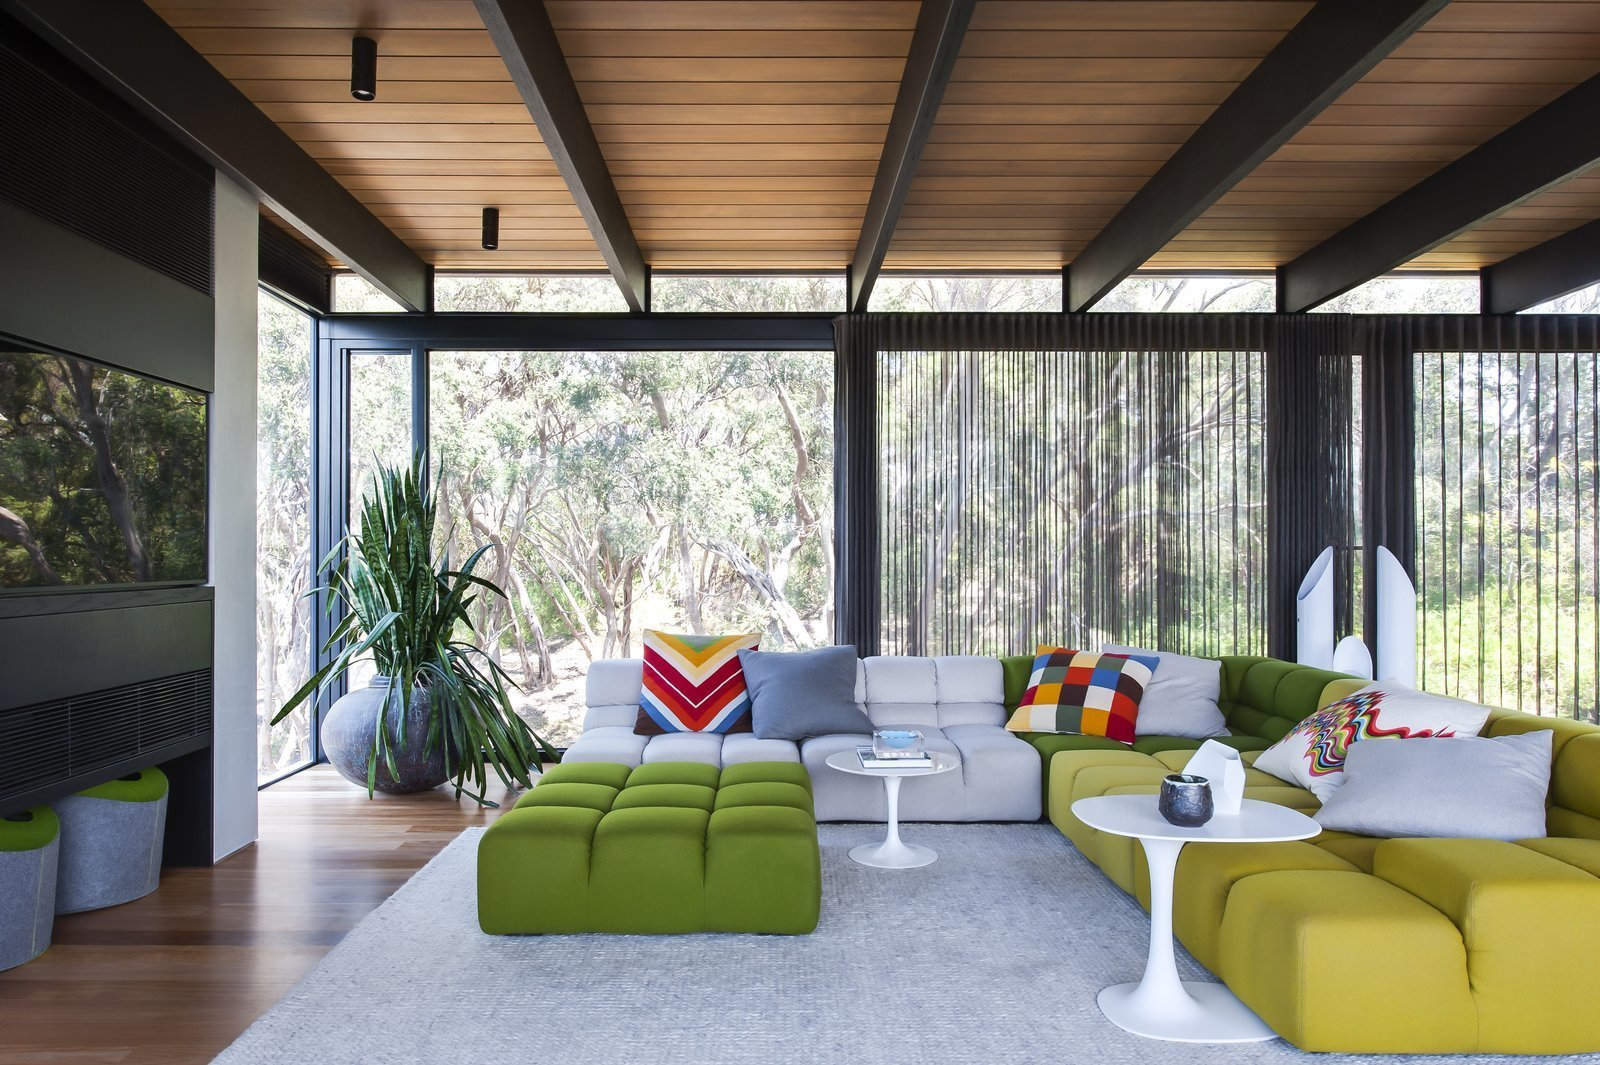 Living, End Tables, Ceiling, Storage, Sofa, Medium Hardwood, and Rug In this house in the Mornington Peninsula in the south of Melbourne, materials like concrete, natural stone, steel and cedar are perfect backdrops for architecture and interior design firm SJB to use bold colors and edgy midcentury furniture.  Best Living End Tables Photos from 11 Amazing Australian Homes